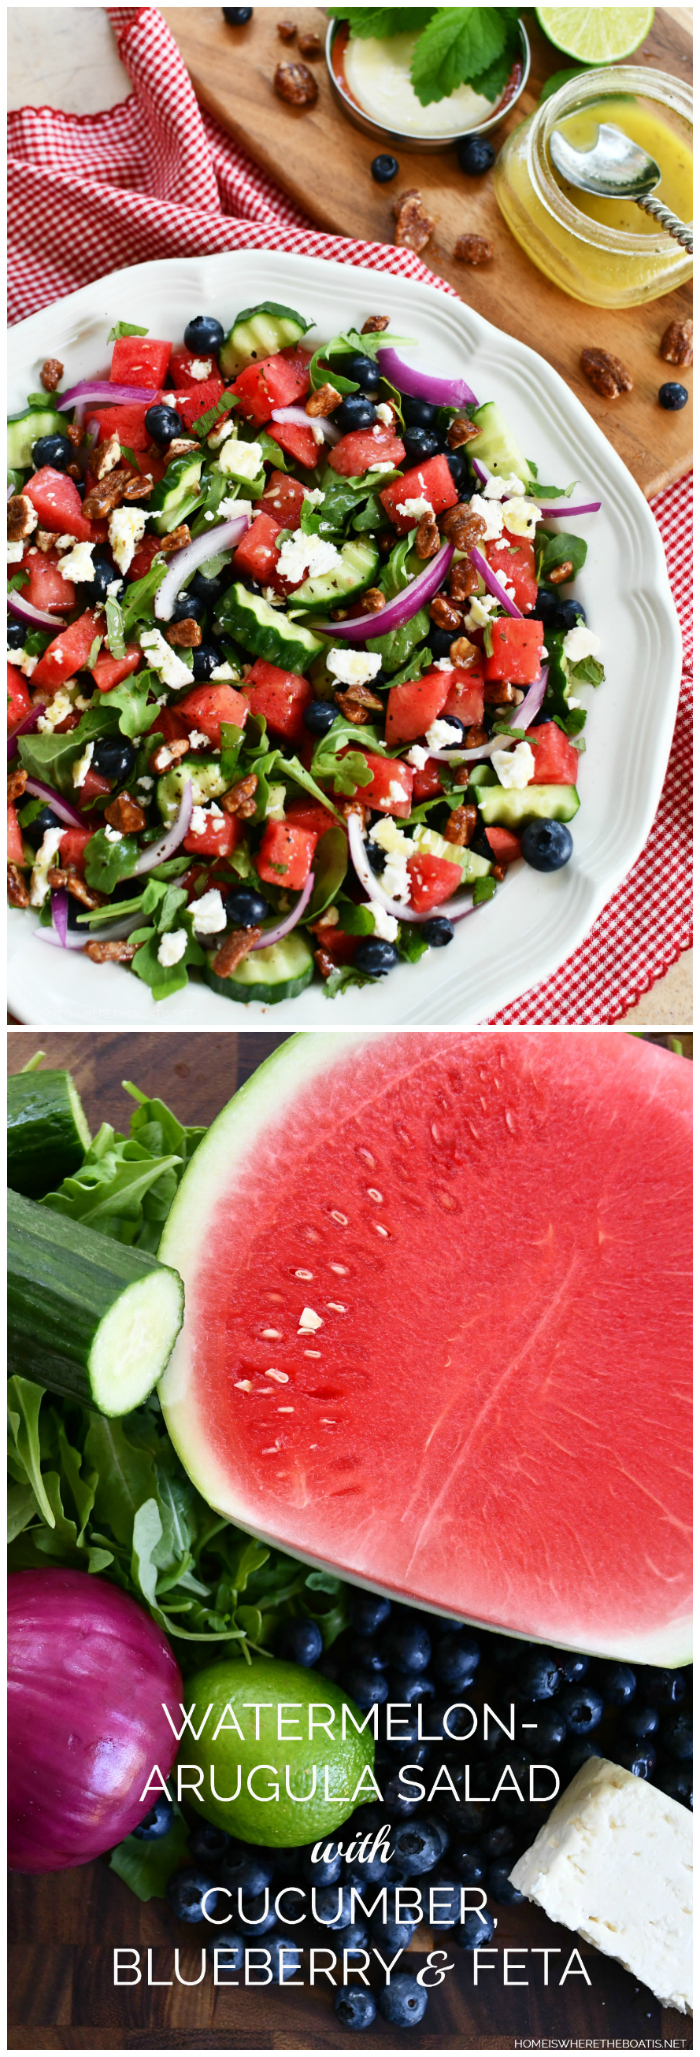 Watermelon - Arugula Salad with Cucumber, Blueberry & Feta with Honey-Lime Vinaigrette | ©homeiswheretheboatis.net #watermelon #summer #salad #healthy #recipes